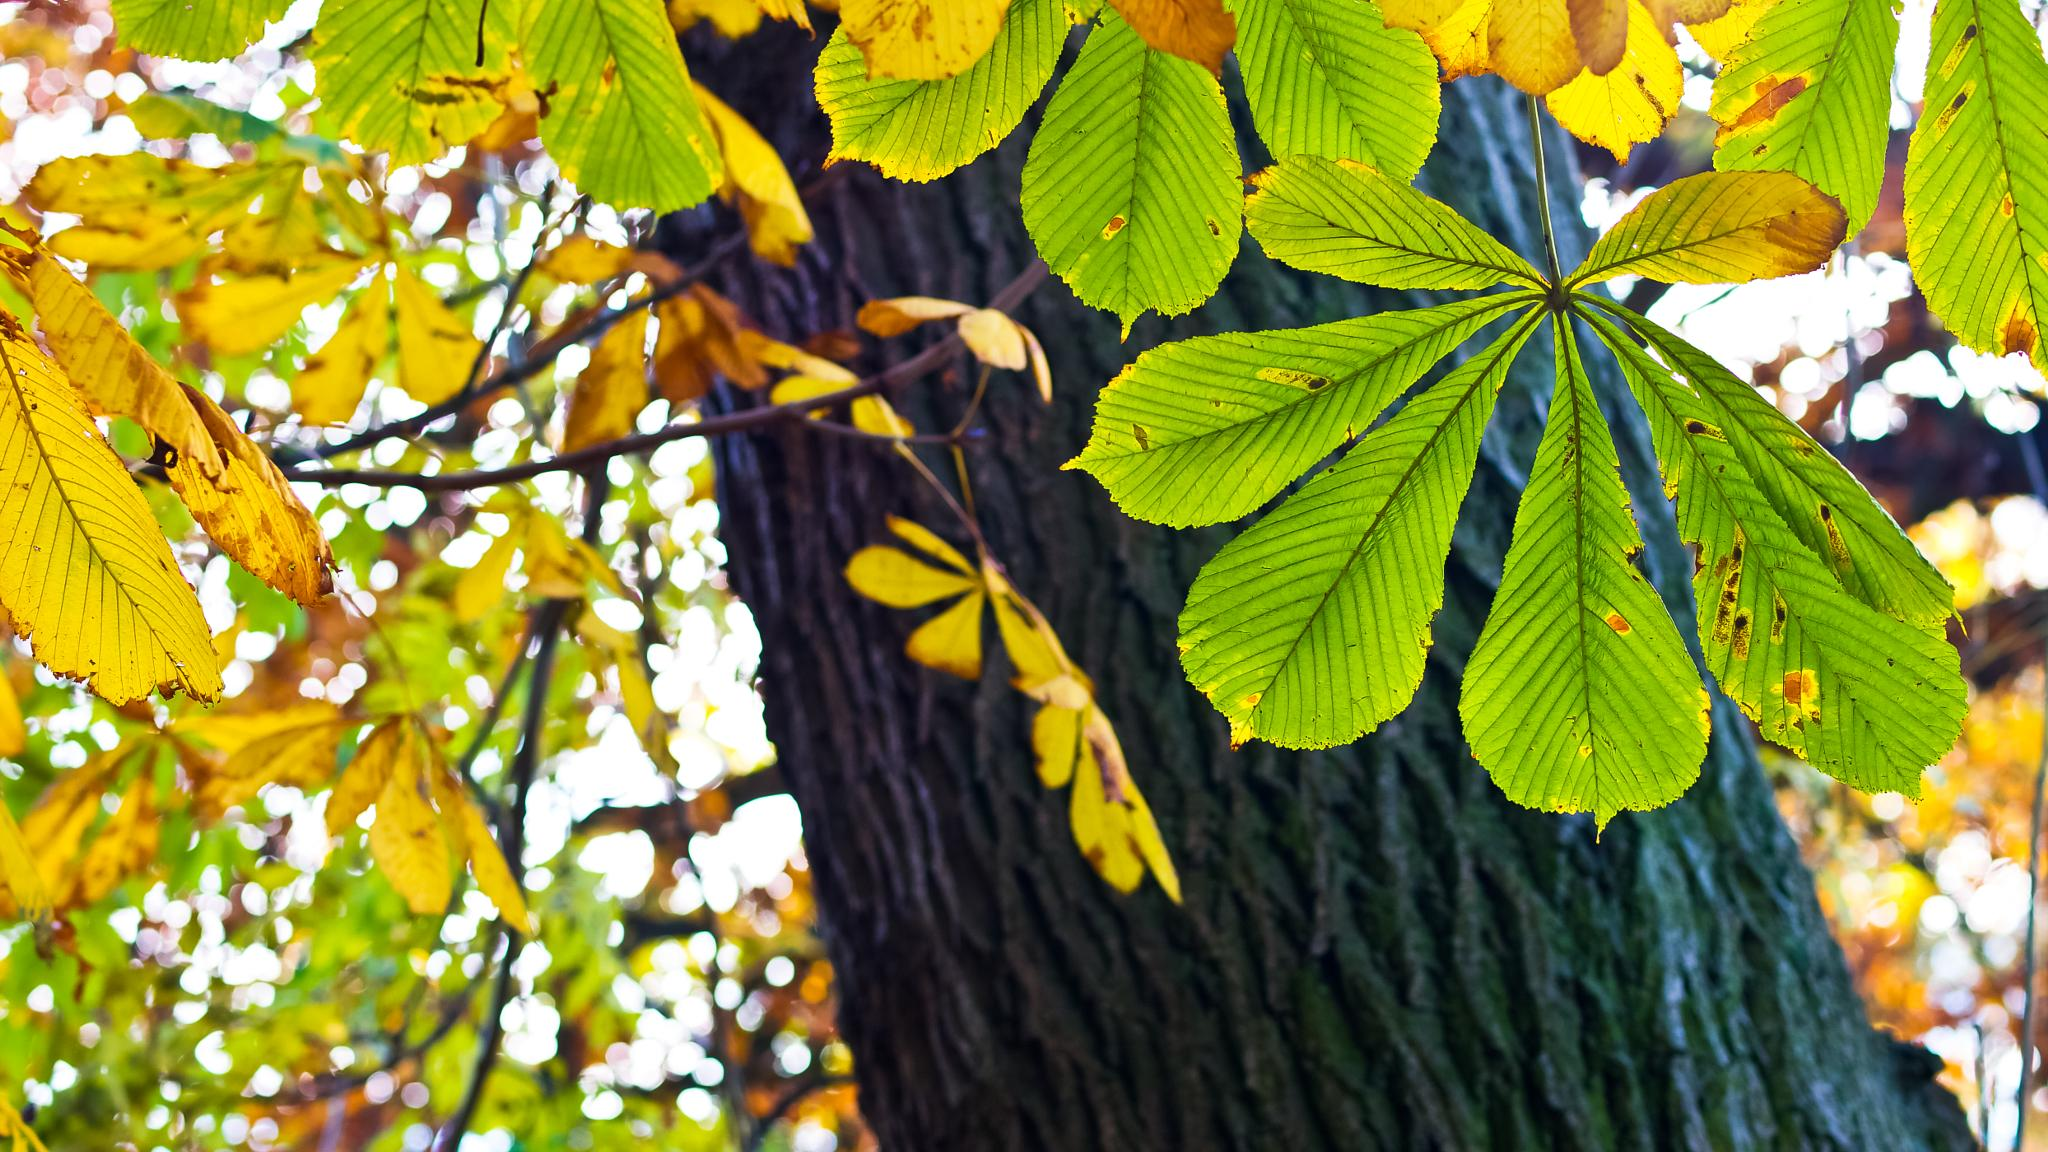 Horse Chestnut by Peter Edwardo Vicente.